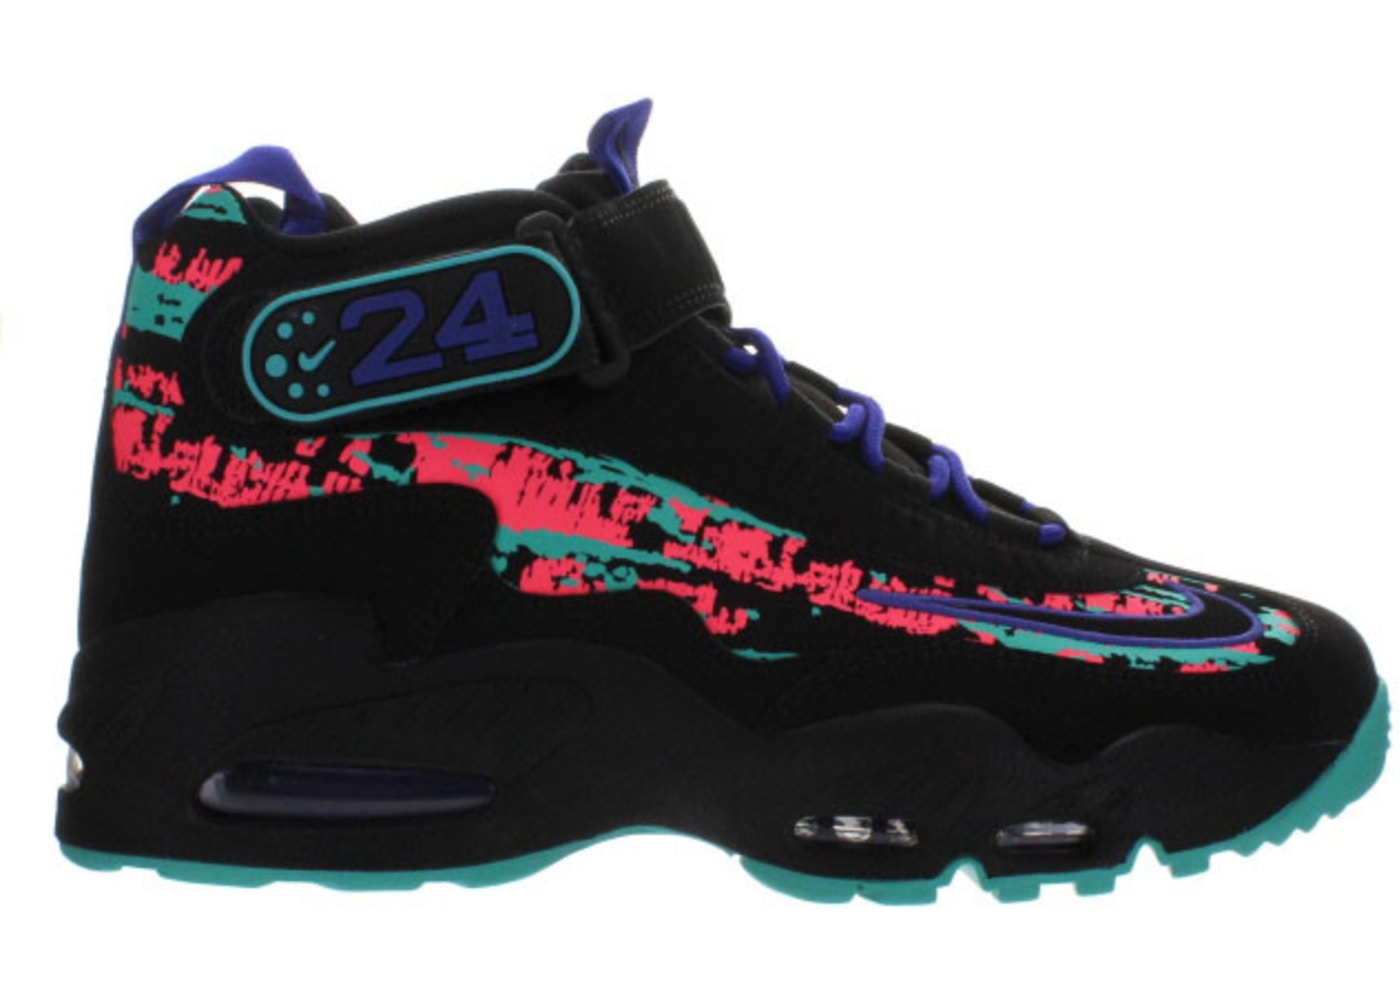 7c3c2dc7da Sell. or Ask. Size: 11. View All Bids. Nike Air Griffey Max 1 Hyper Jade